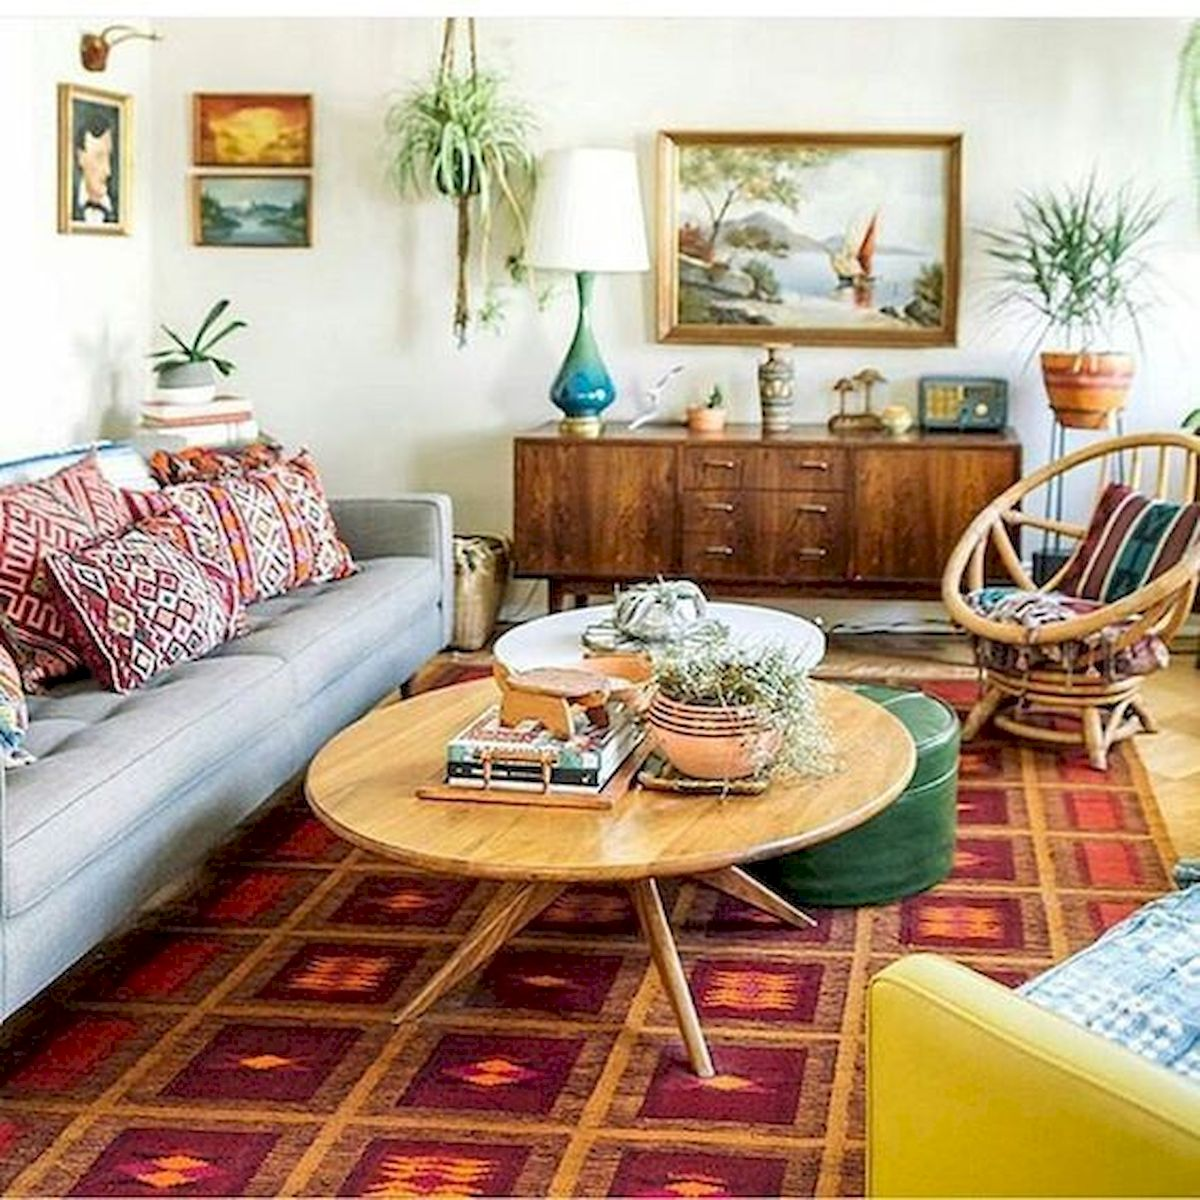 73 Eclectic Living Room Decor Ideas (9)